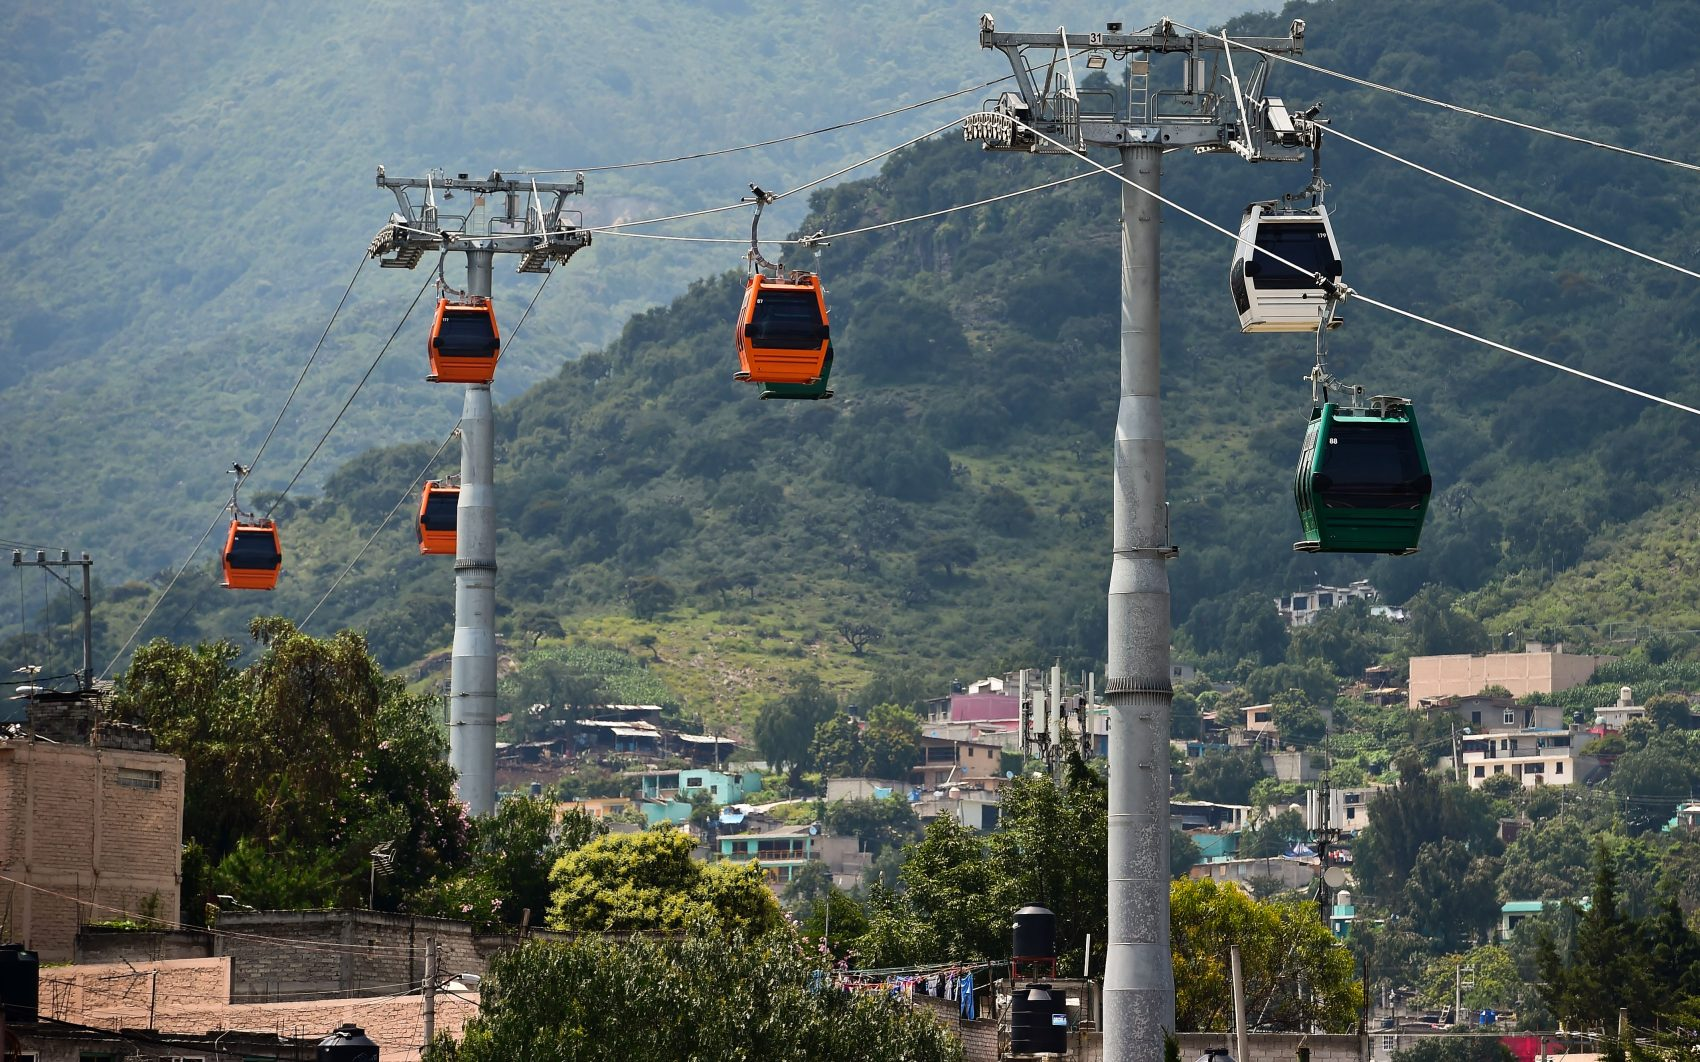 A view of cable cars in Ecatepec, Mexico, on Aug. 25, 2016. Dozens of murals were painted on buildings in a neighborhood in Ecatepec, on the route of a new cable car that started running in 2016. (Ronaldo Schemidt/AFP/Getty Images)